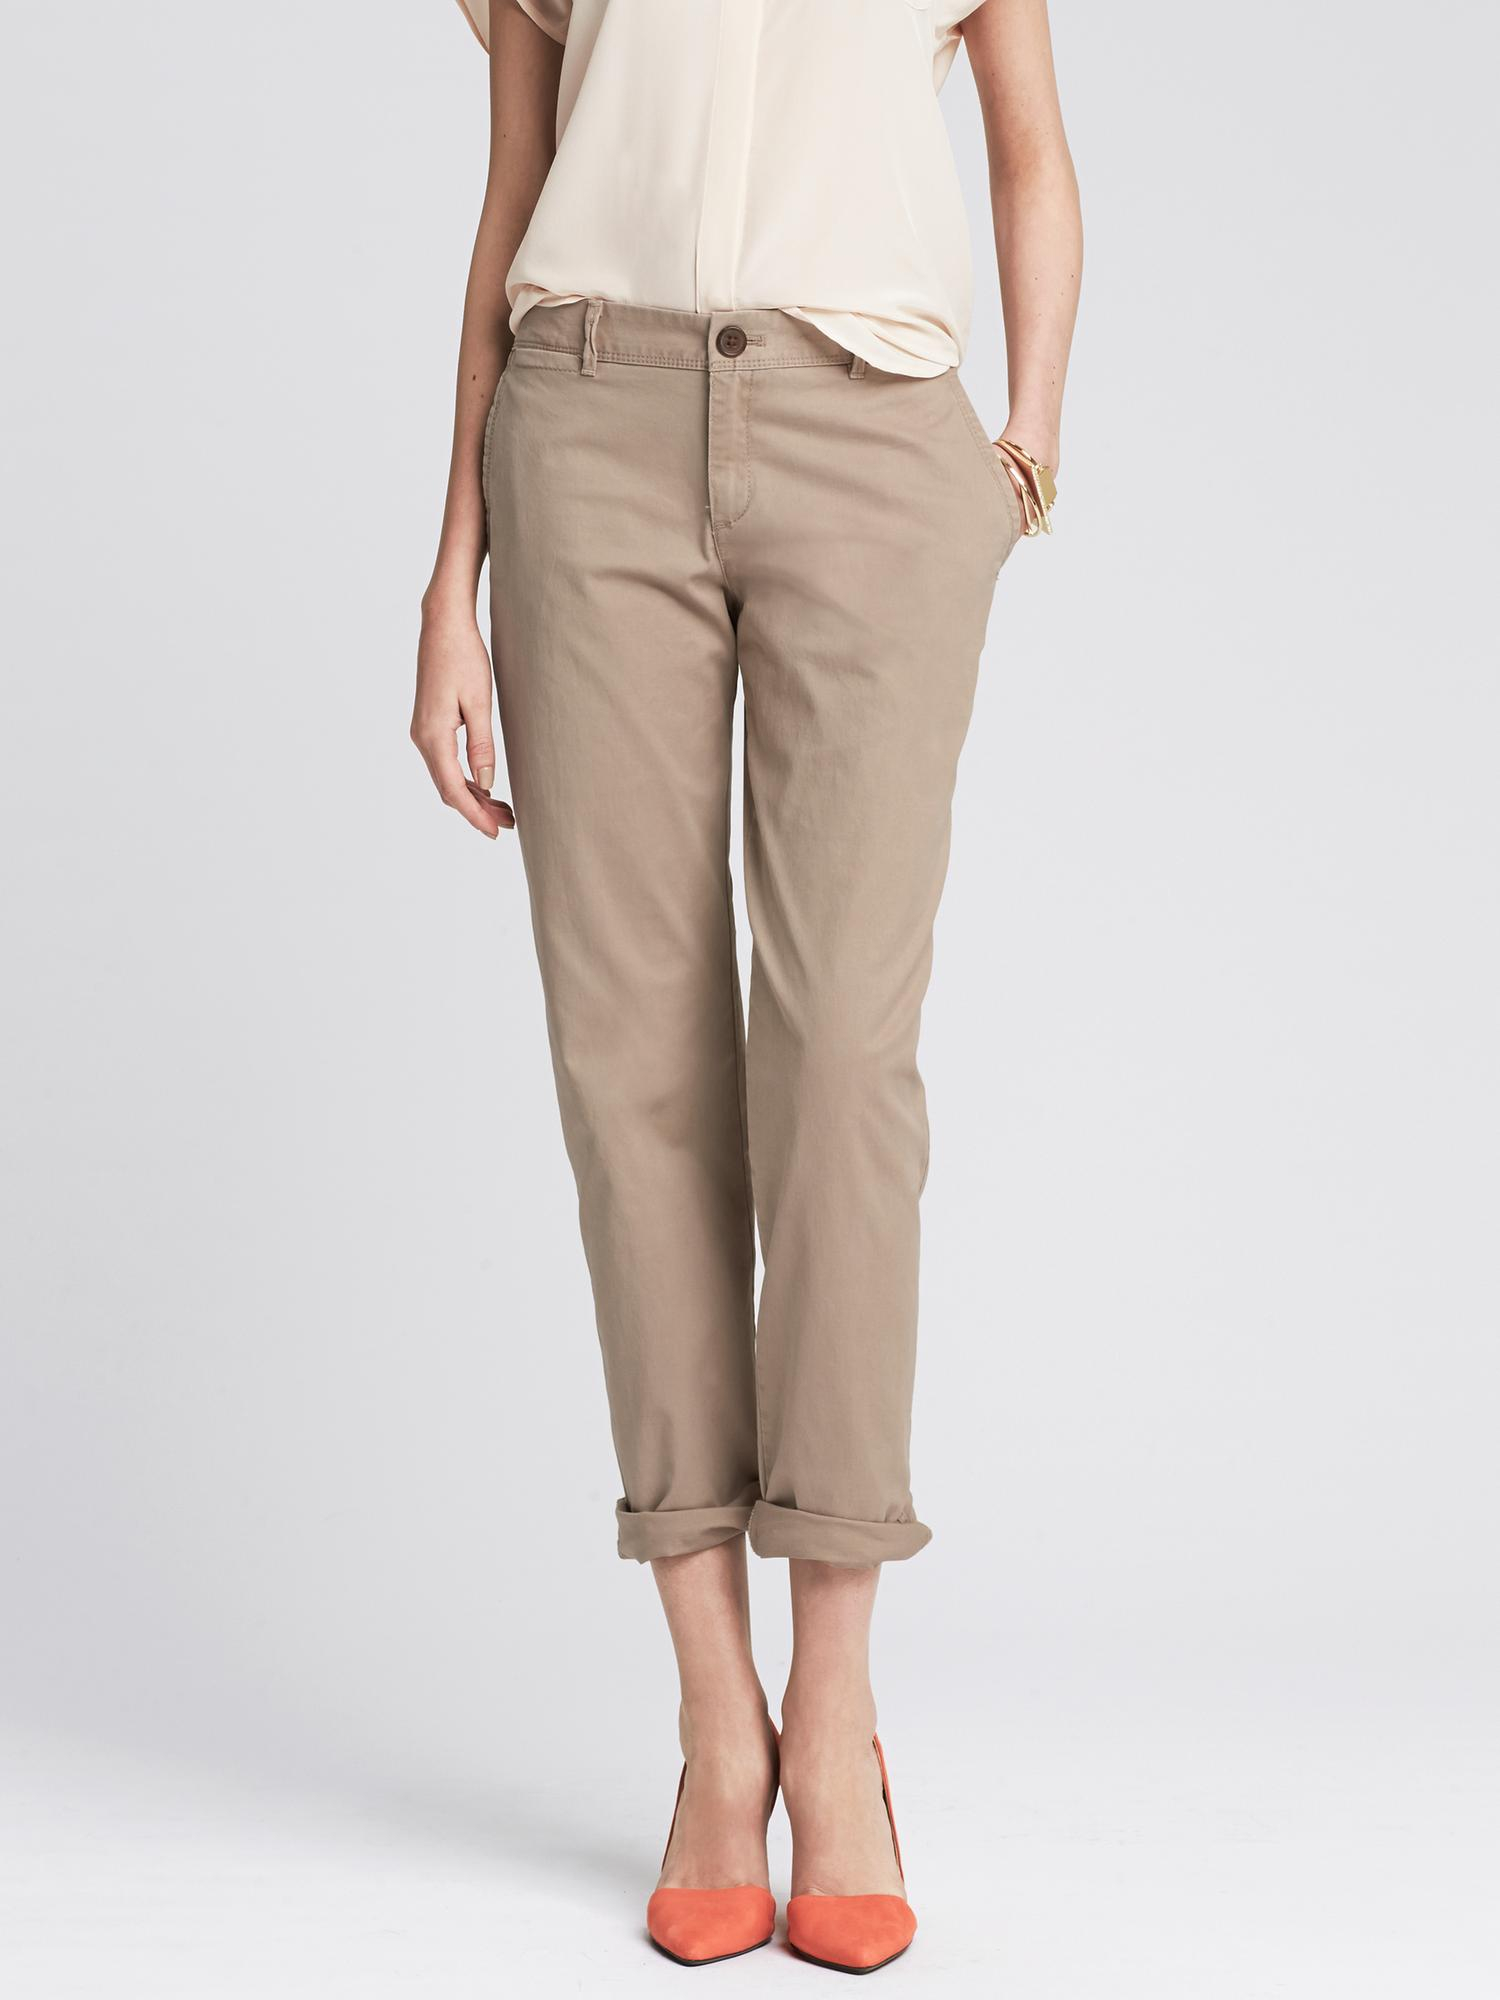 Cool Increase Traffic To Your Listing With Auctivas FREE Scrolling Gallery Womens Banana Republic Brown Weekend Chinos Pants Sz 8 Brand Banana Republic Condition Very Good Size 8 Inseam 30&quot Waist 34&quot Hips 38&quot Rise 9&quot Fabric